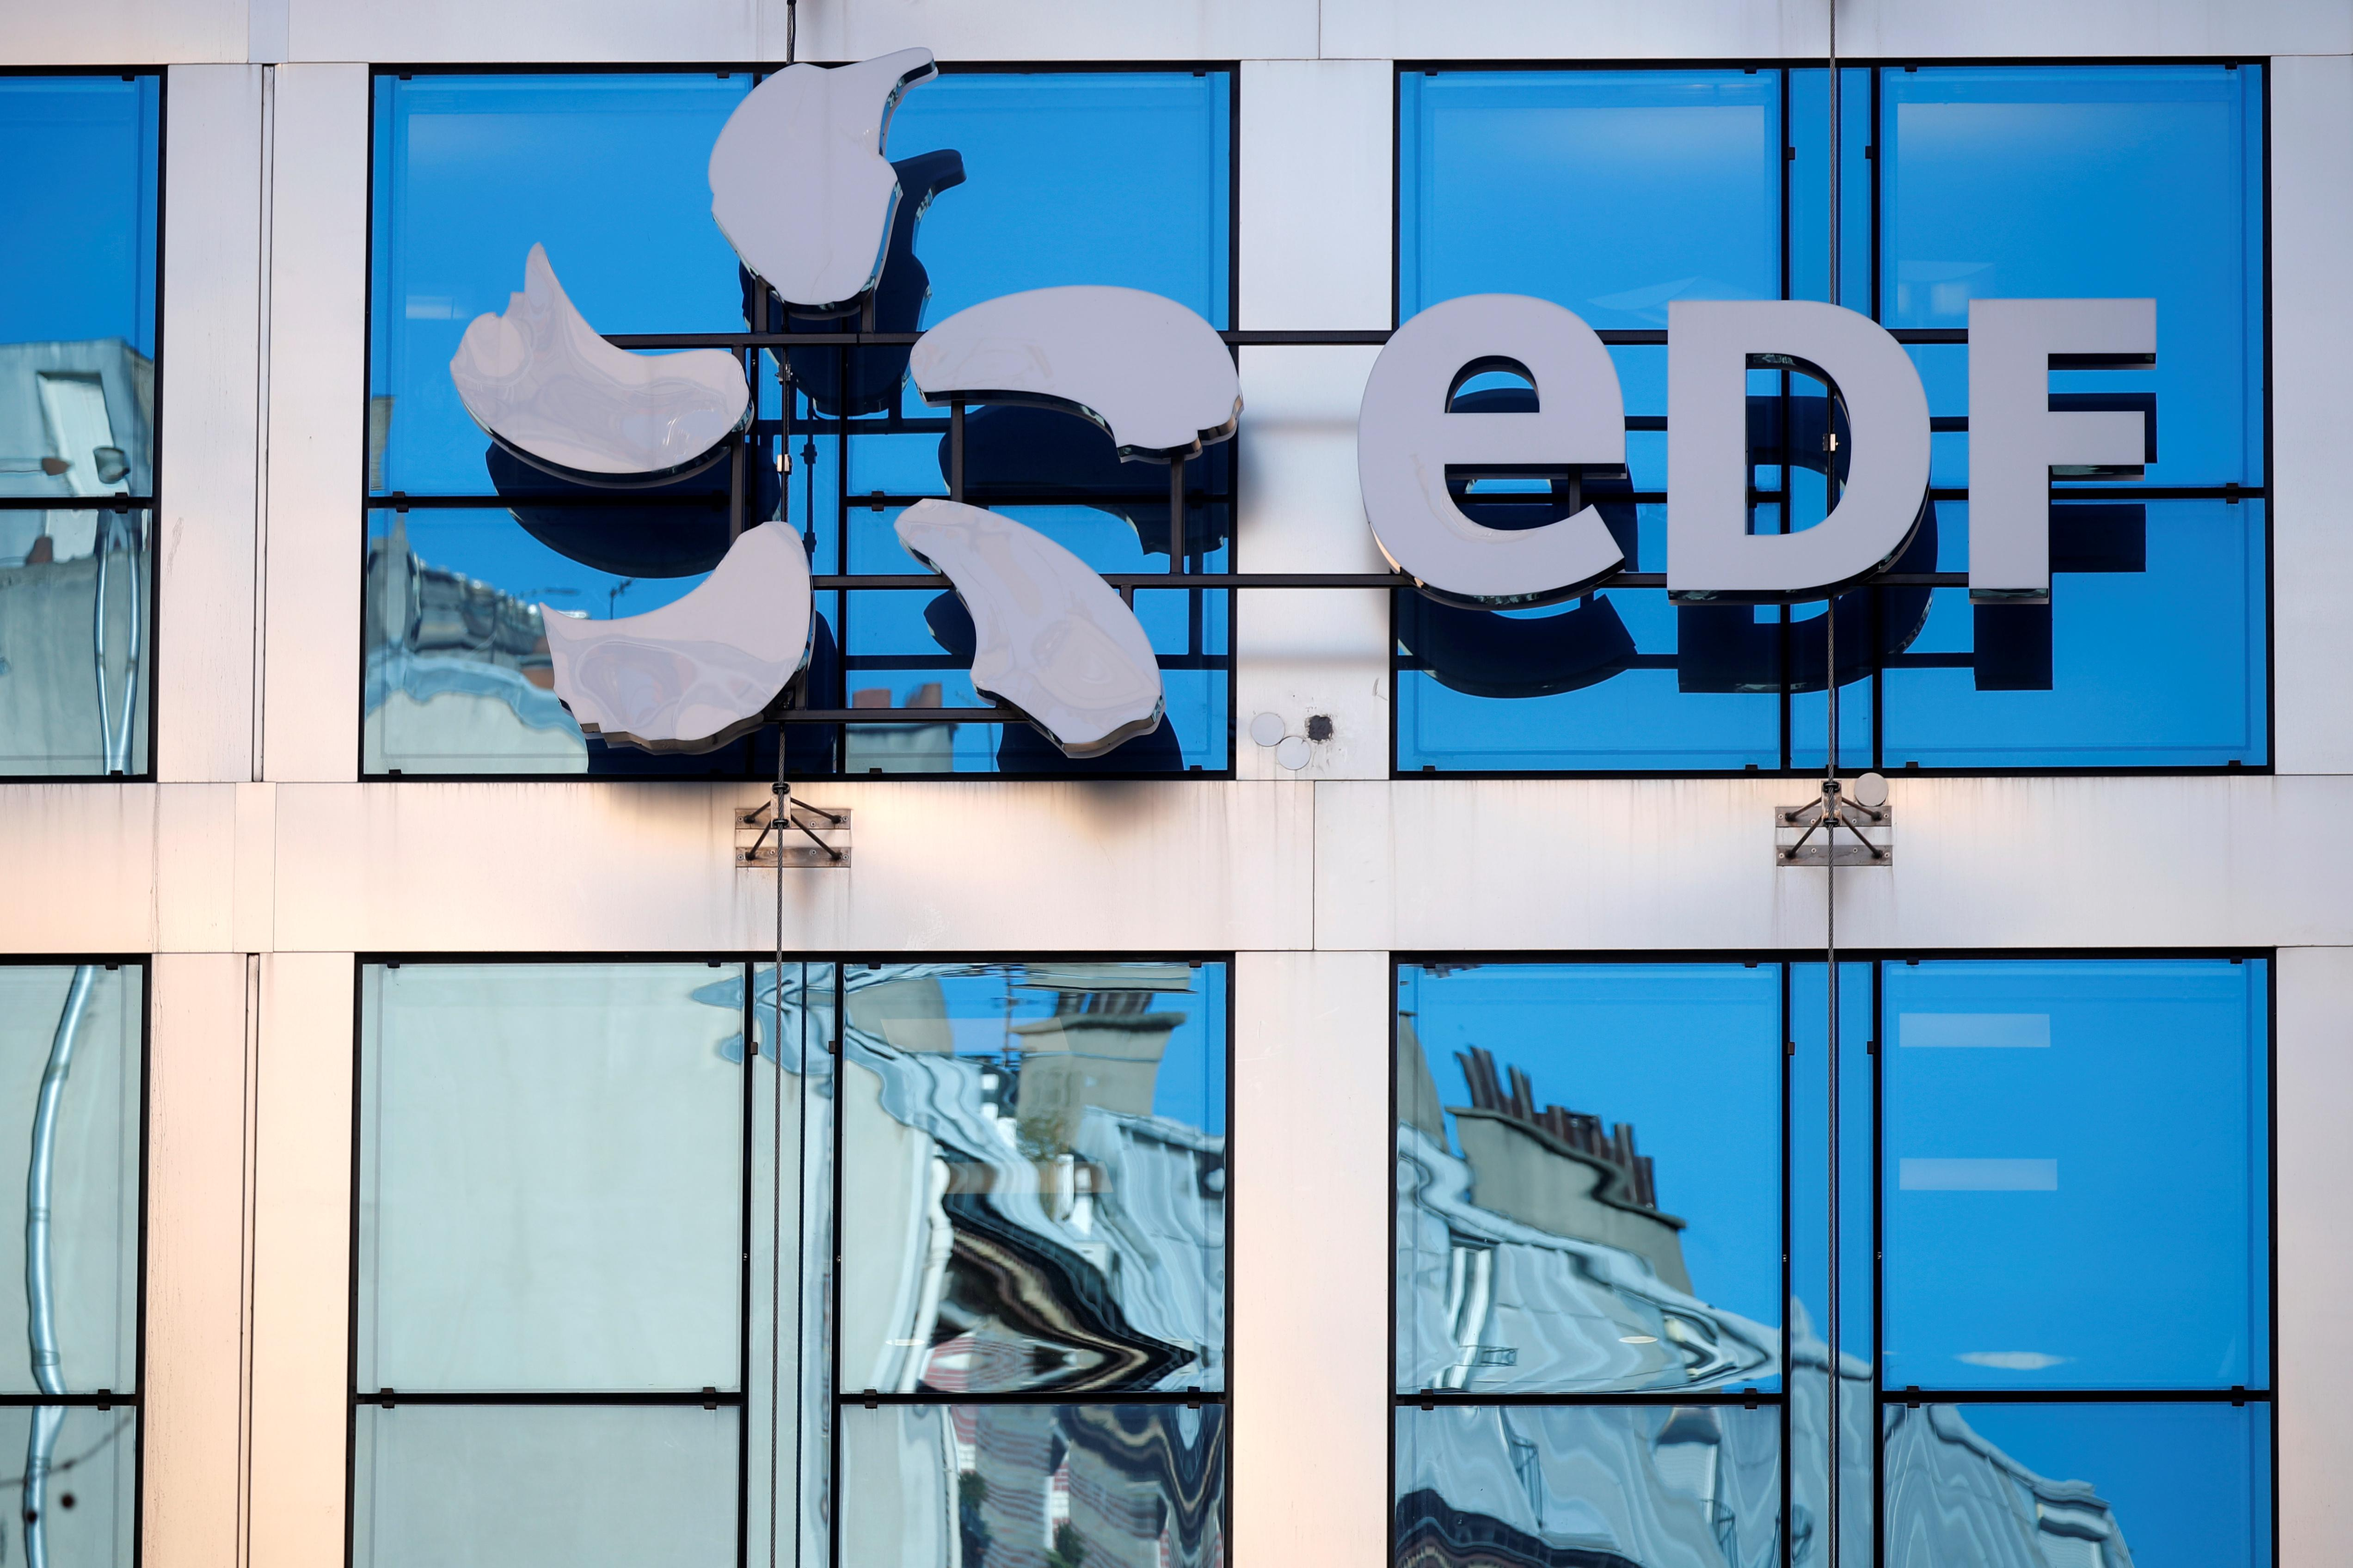 France's EDF flags problems with nuclear welds, shares dive